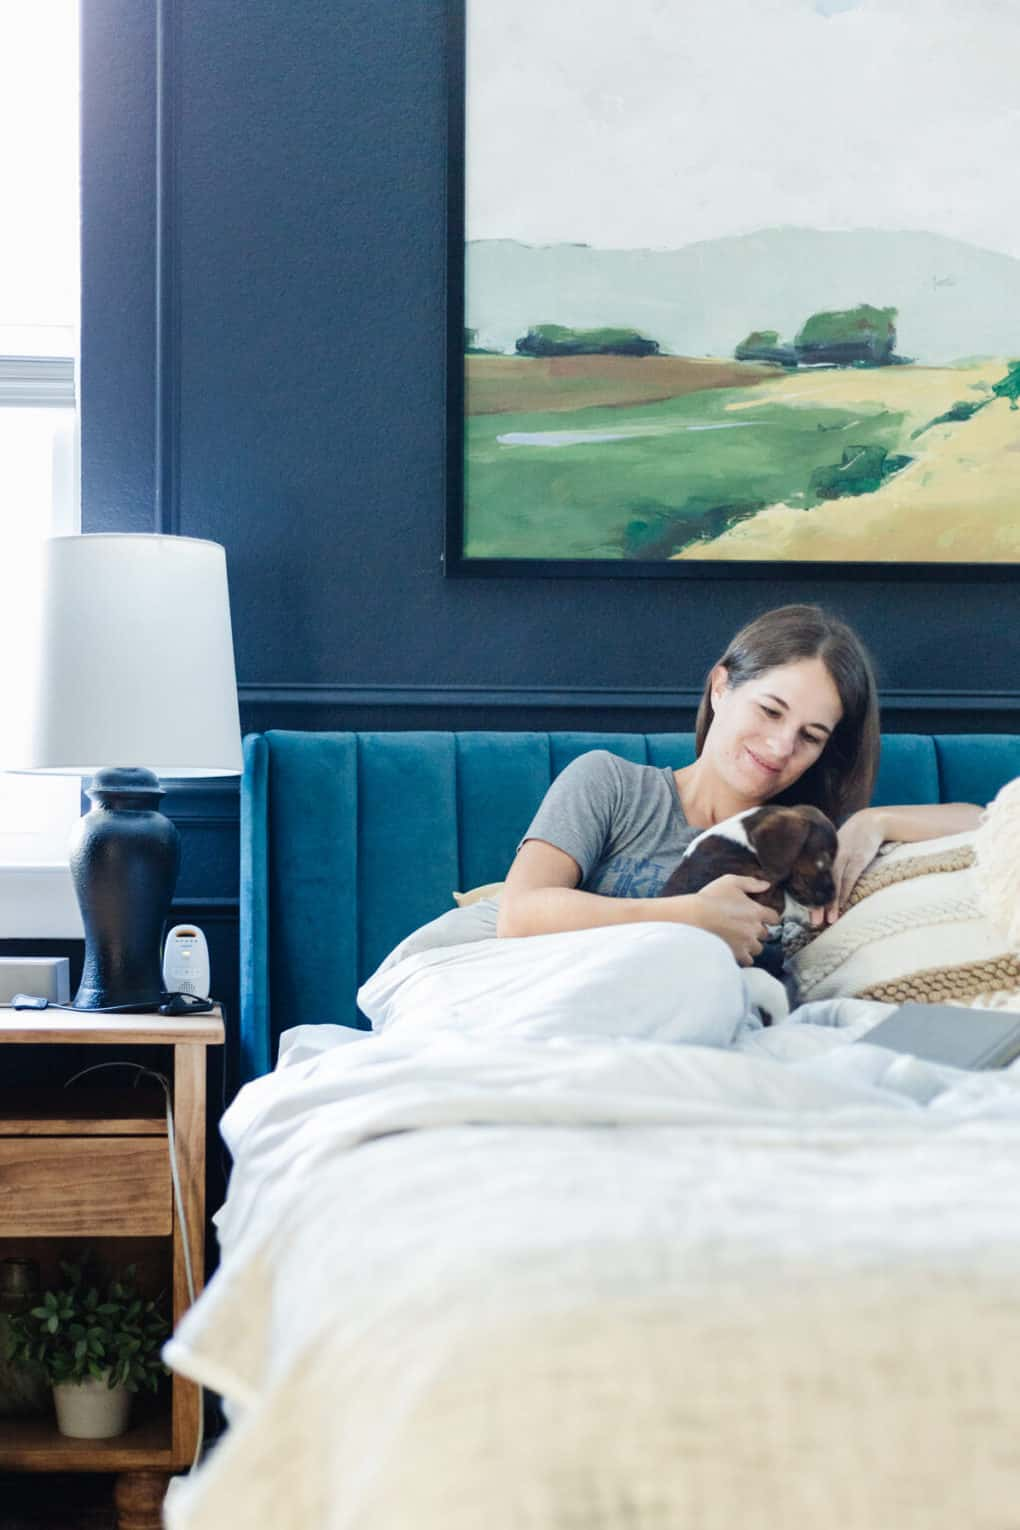 woman sitting on a bed using a weighted blanket and playing with a small puppy